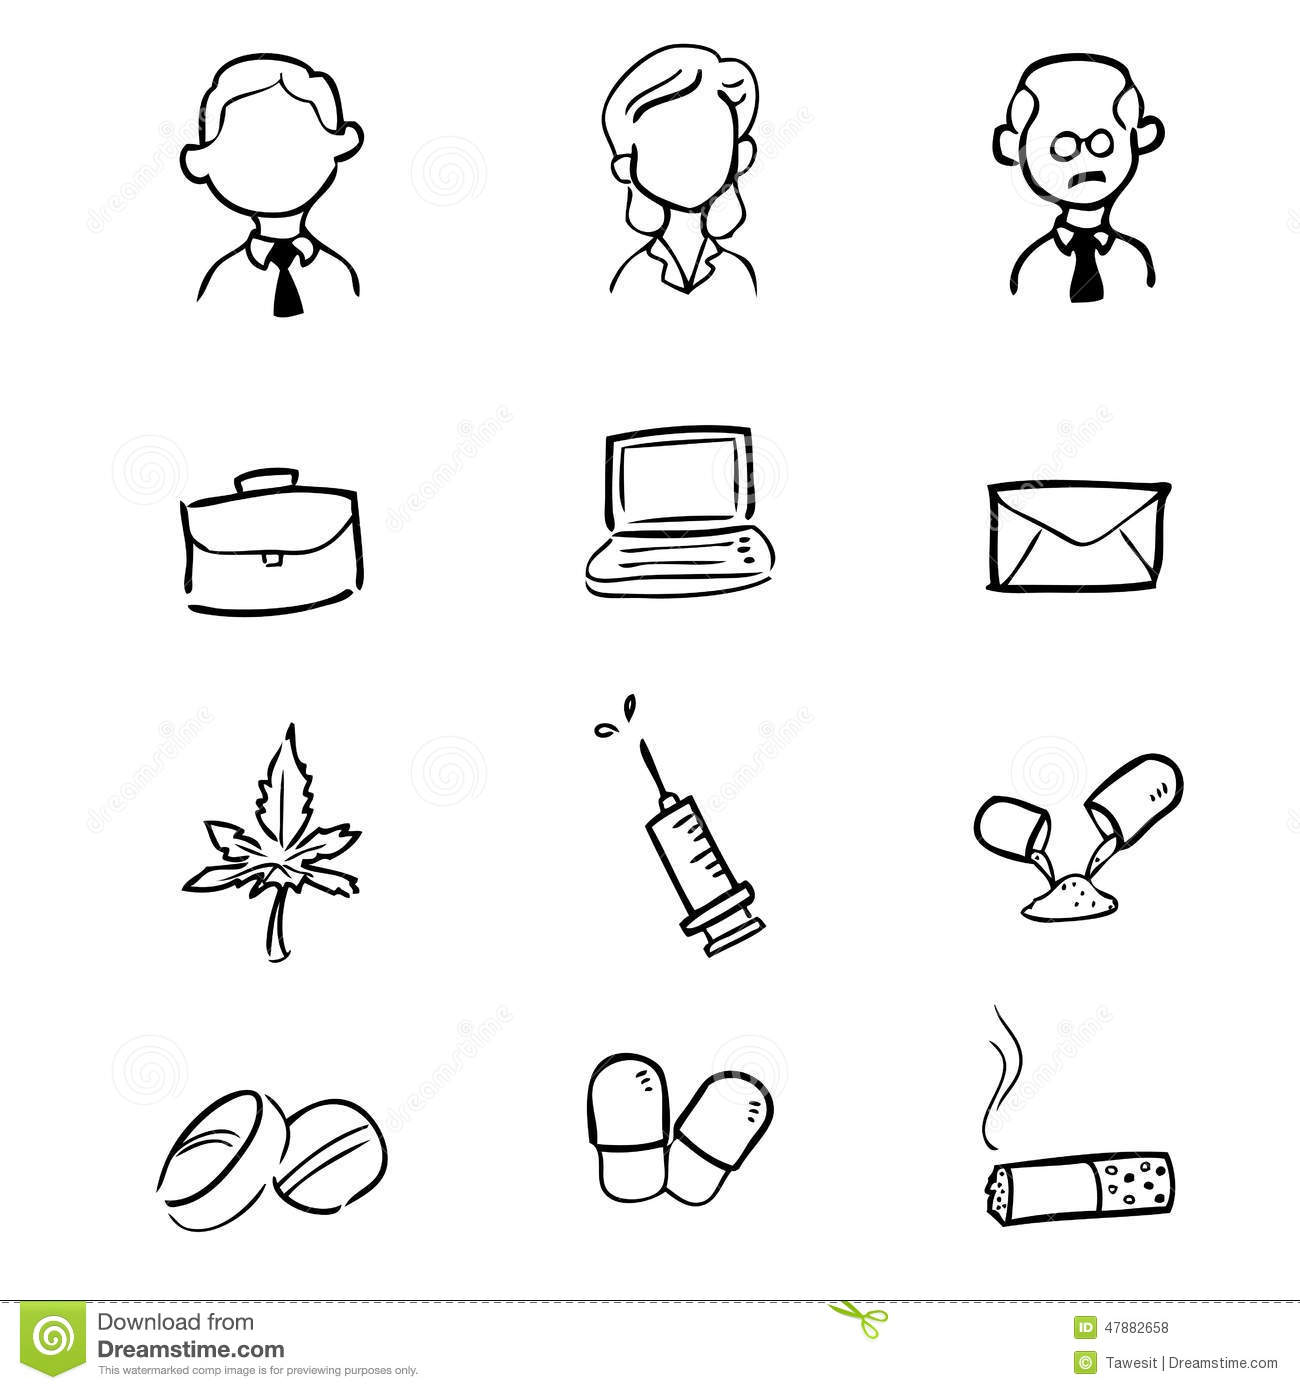 White Facing Weed Businessman Drugs Icons Set Stock Vector Image 47882658